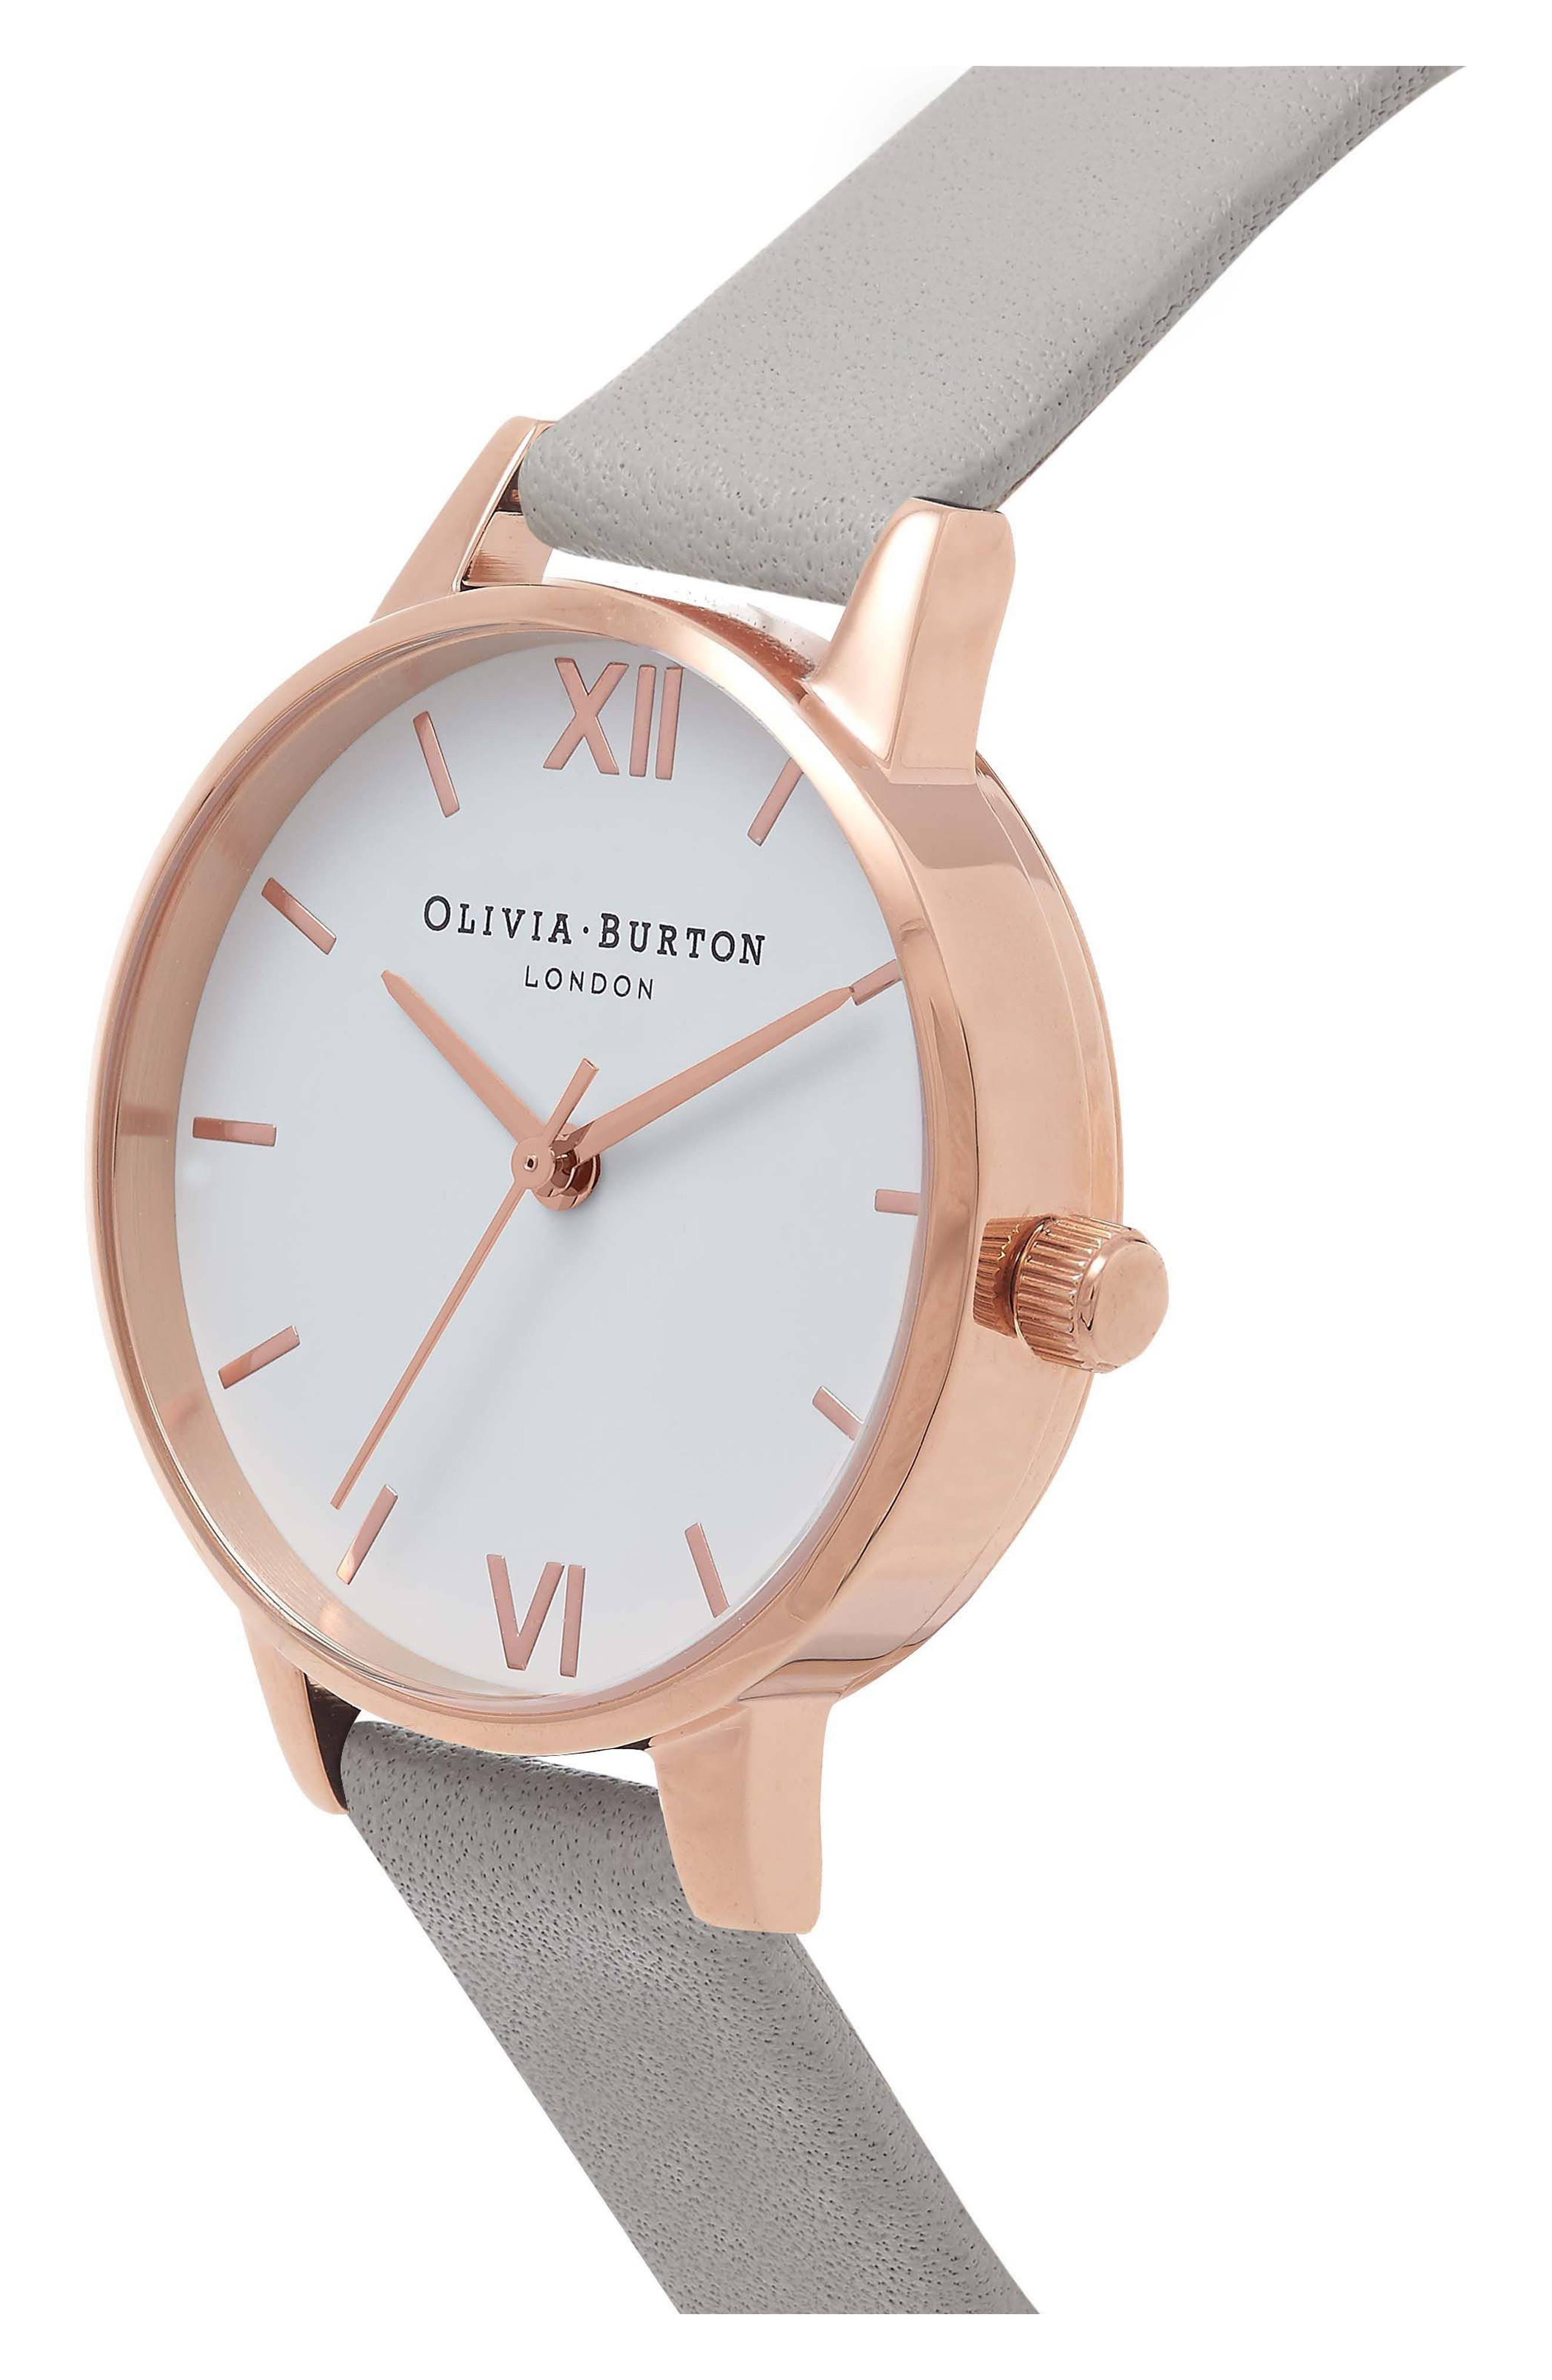 OLIVIA BURTON, Midi Dial Leather Strap Watch, 30mm, Alternate thumbnail 4, color, GREY/ WHITE/ ROSE GOLD